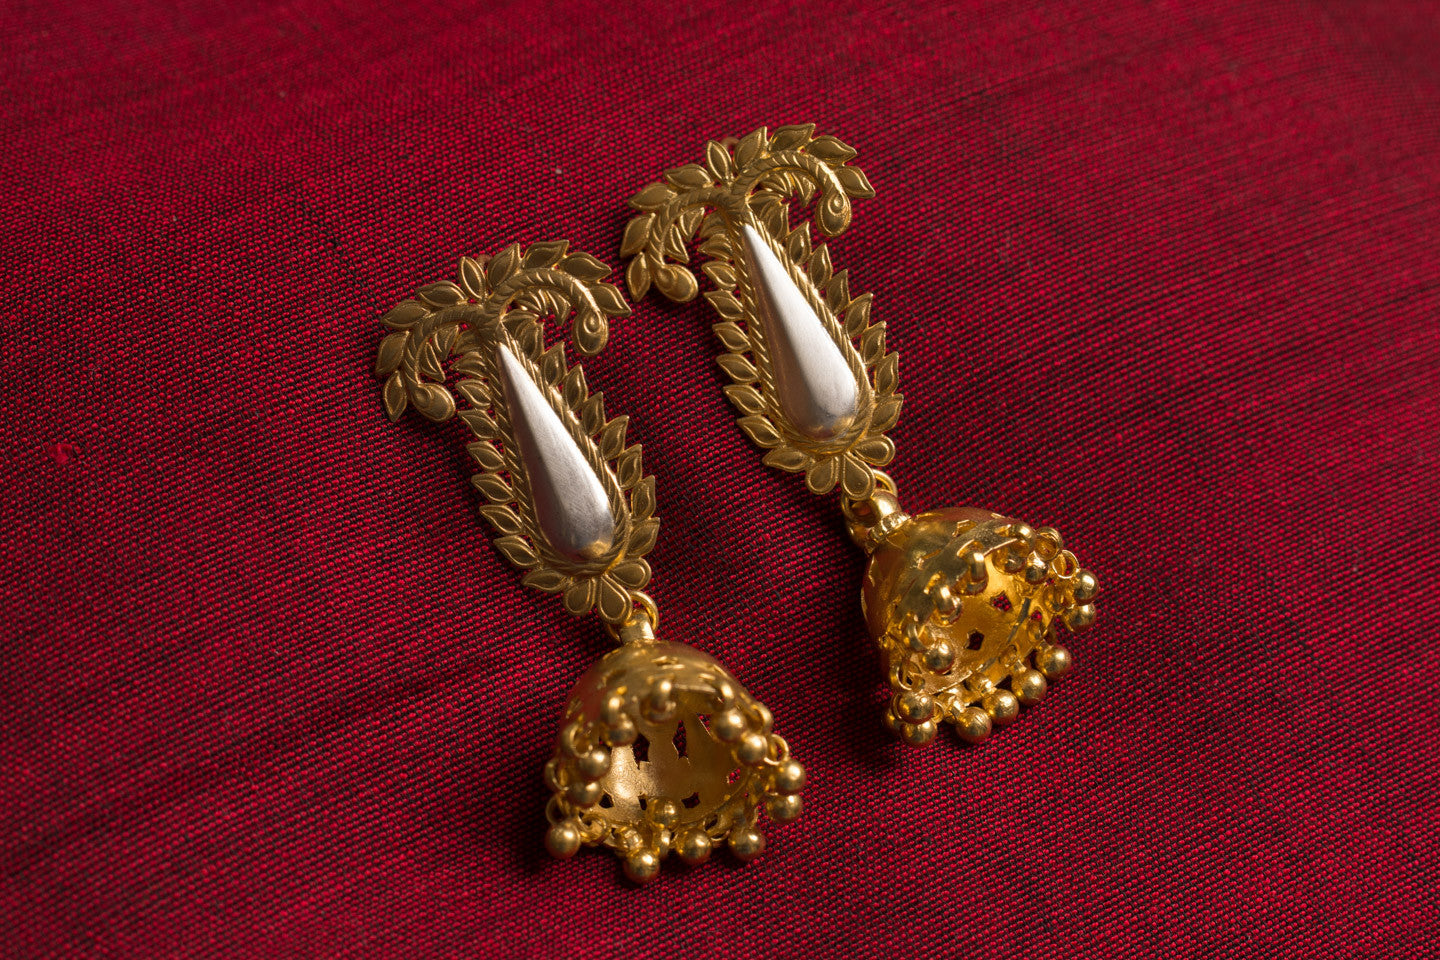 20a451-silver-gold-plated-amrapali-earrings-post-leaf-motif-chandelier-alternate-view-1